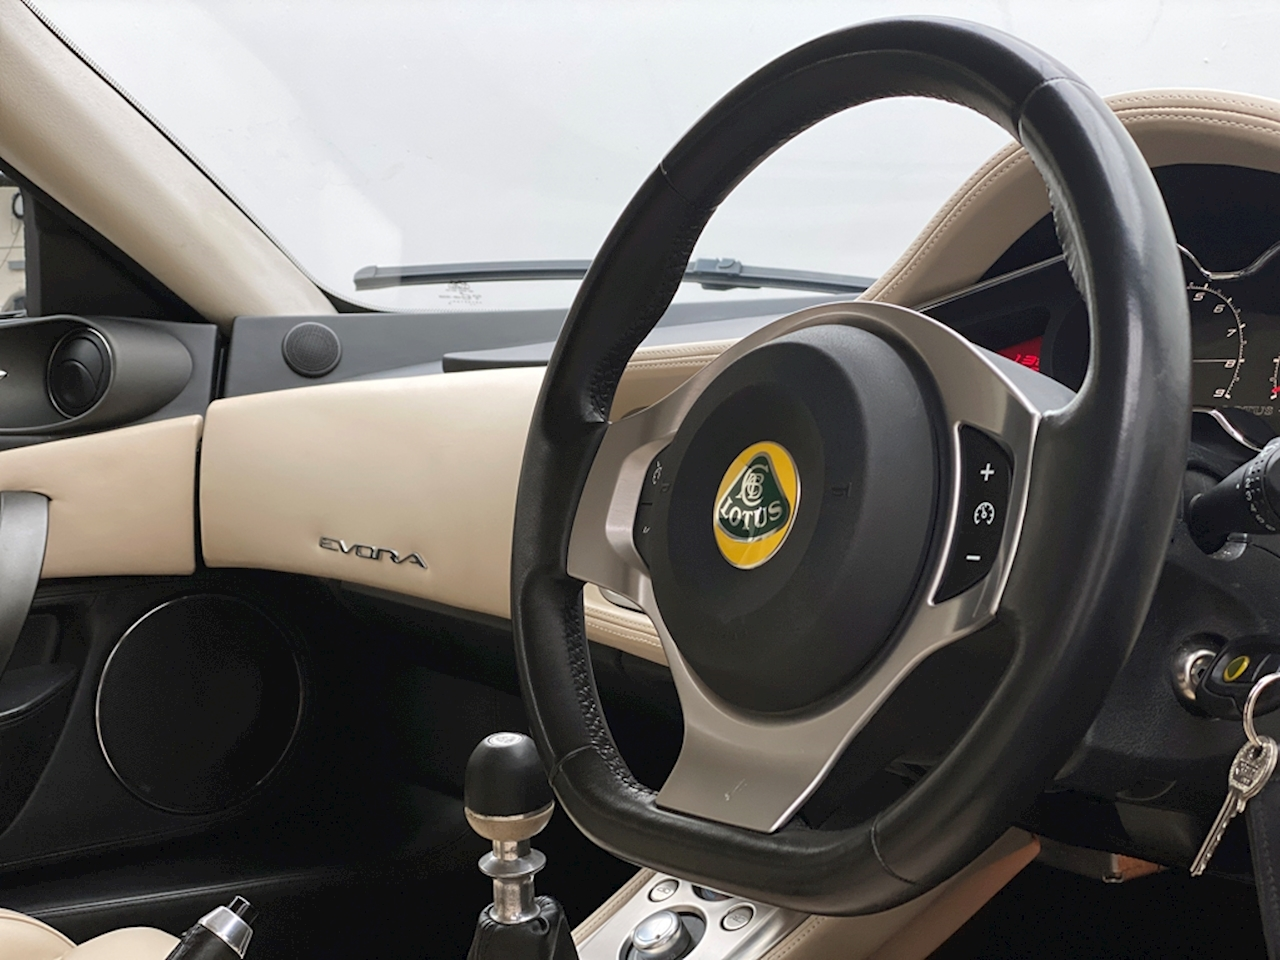 Lotus Evora V6 4 Coupe 3.5 Manual Petrol